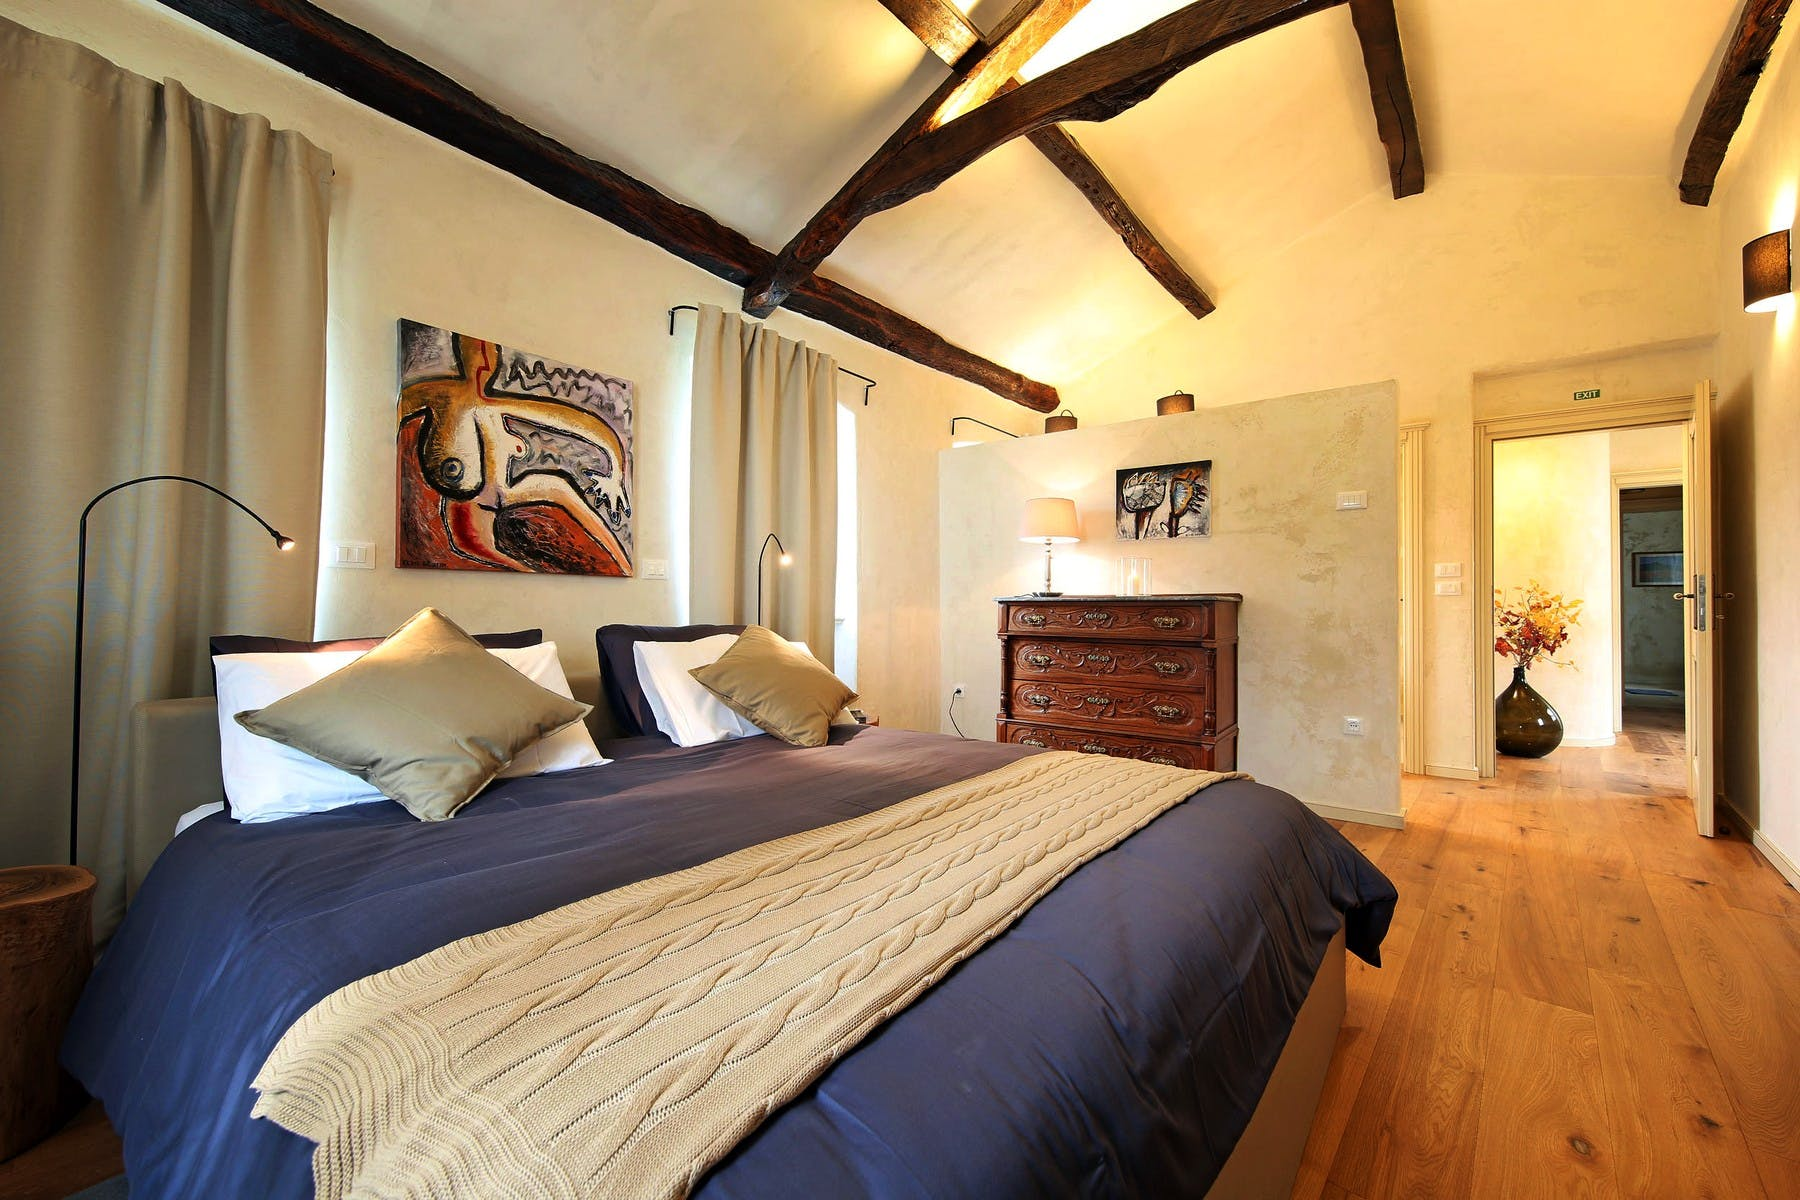 Double bedroom with traditional interior details